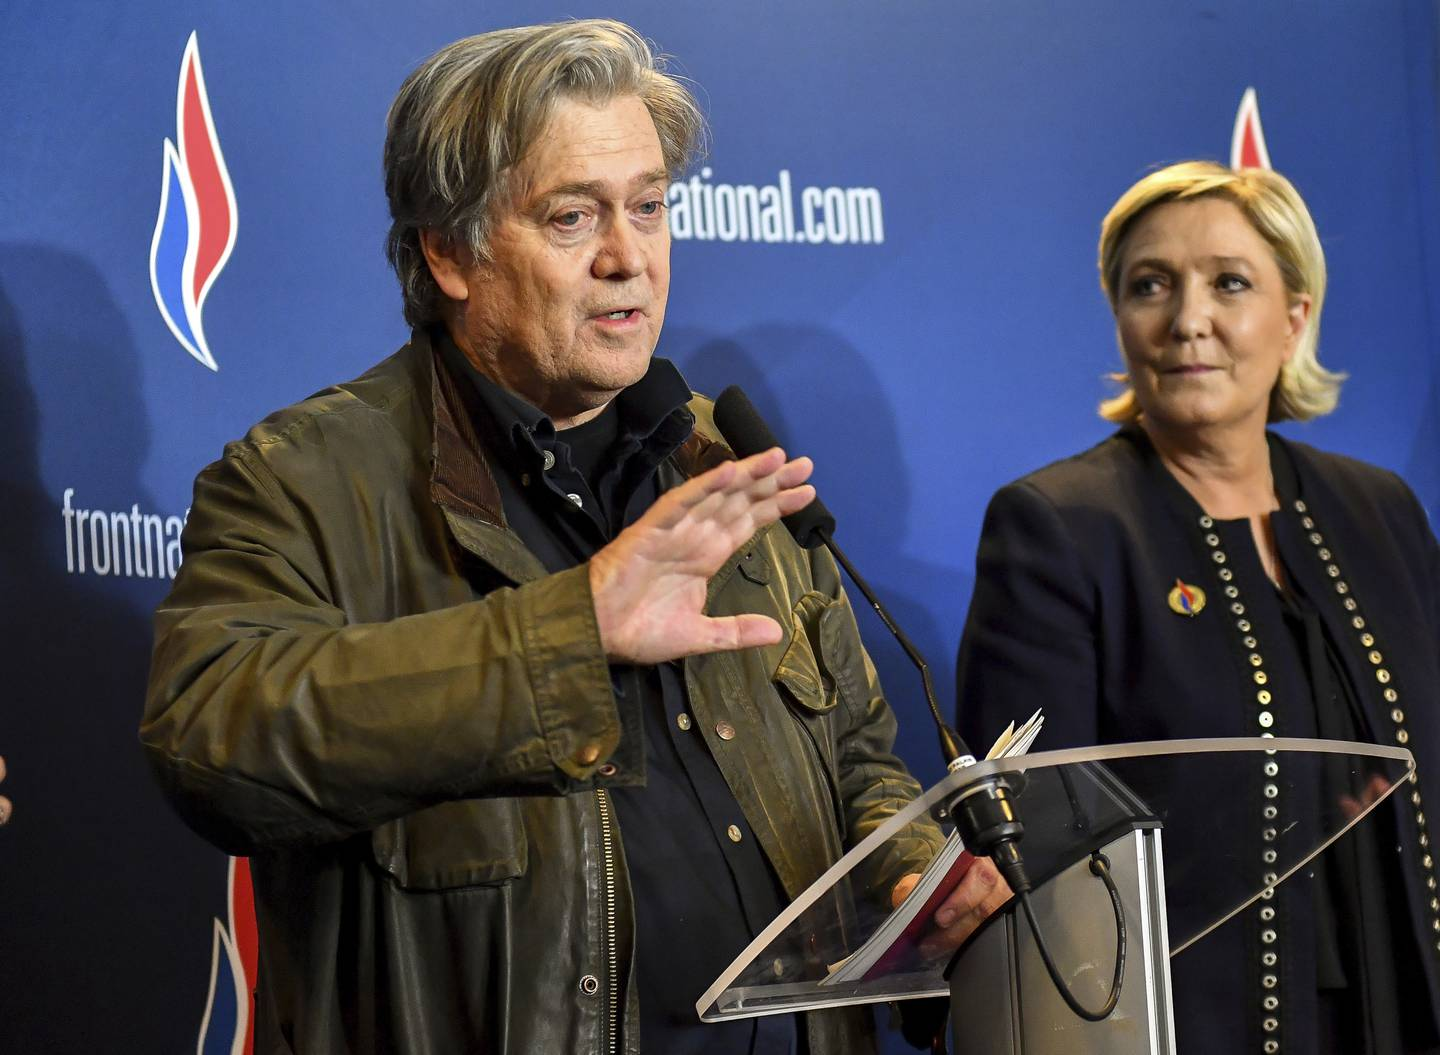 FILE - In this Saturday, March 10, 2018 file photo, former White House strategist Steve Bannon holds a press conference with National Front party leader Marine Le Pen, right, at the party congress in the northern French city of Lille. French far-right leader Le Pen distanced herself Monday, Oct. 8, 2018 from former White House strategist Steve Bannon, saying only Europeans will save the continent from diktats from Brussels, not Americans. (AP Photo, File)